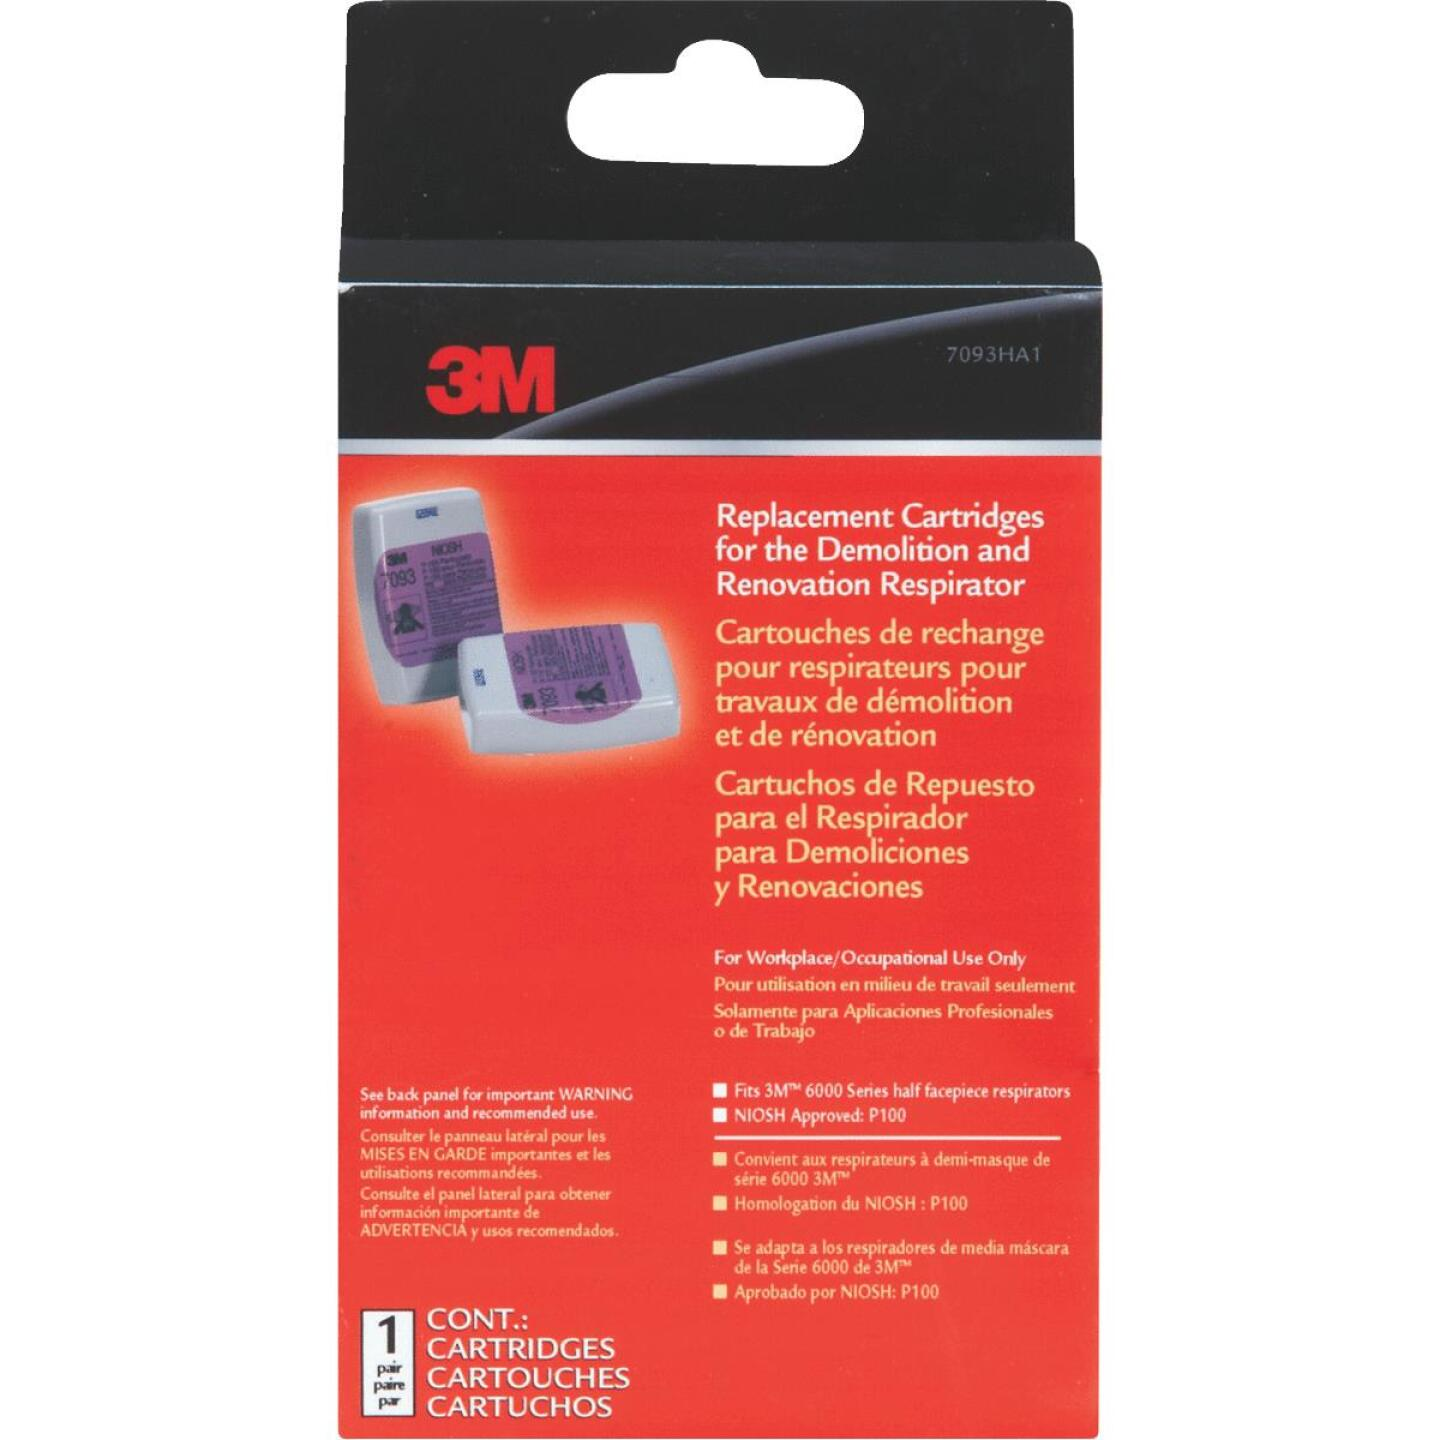 3M P100 Demolition Replacement Filter Cartridge (2-Pack) Image 2